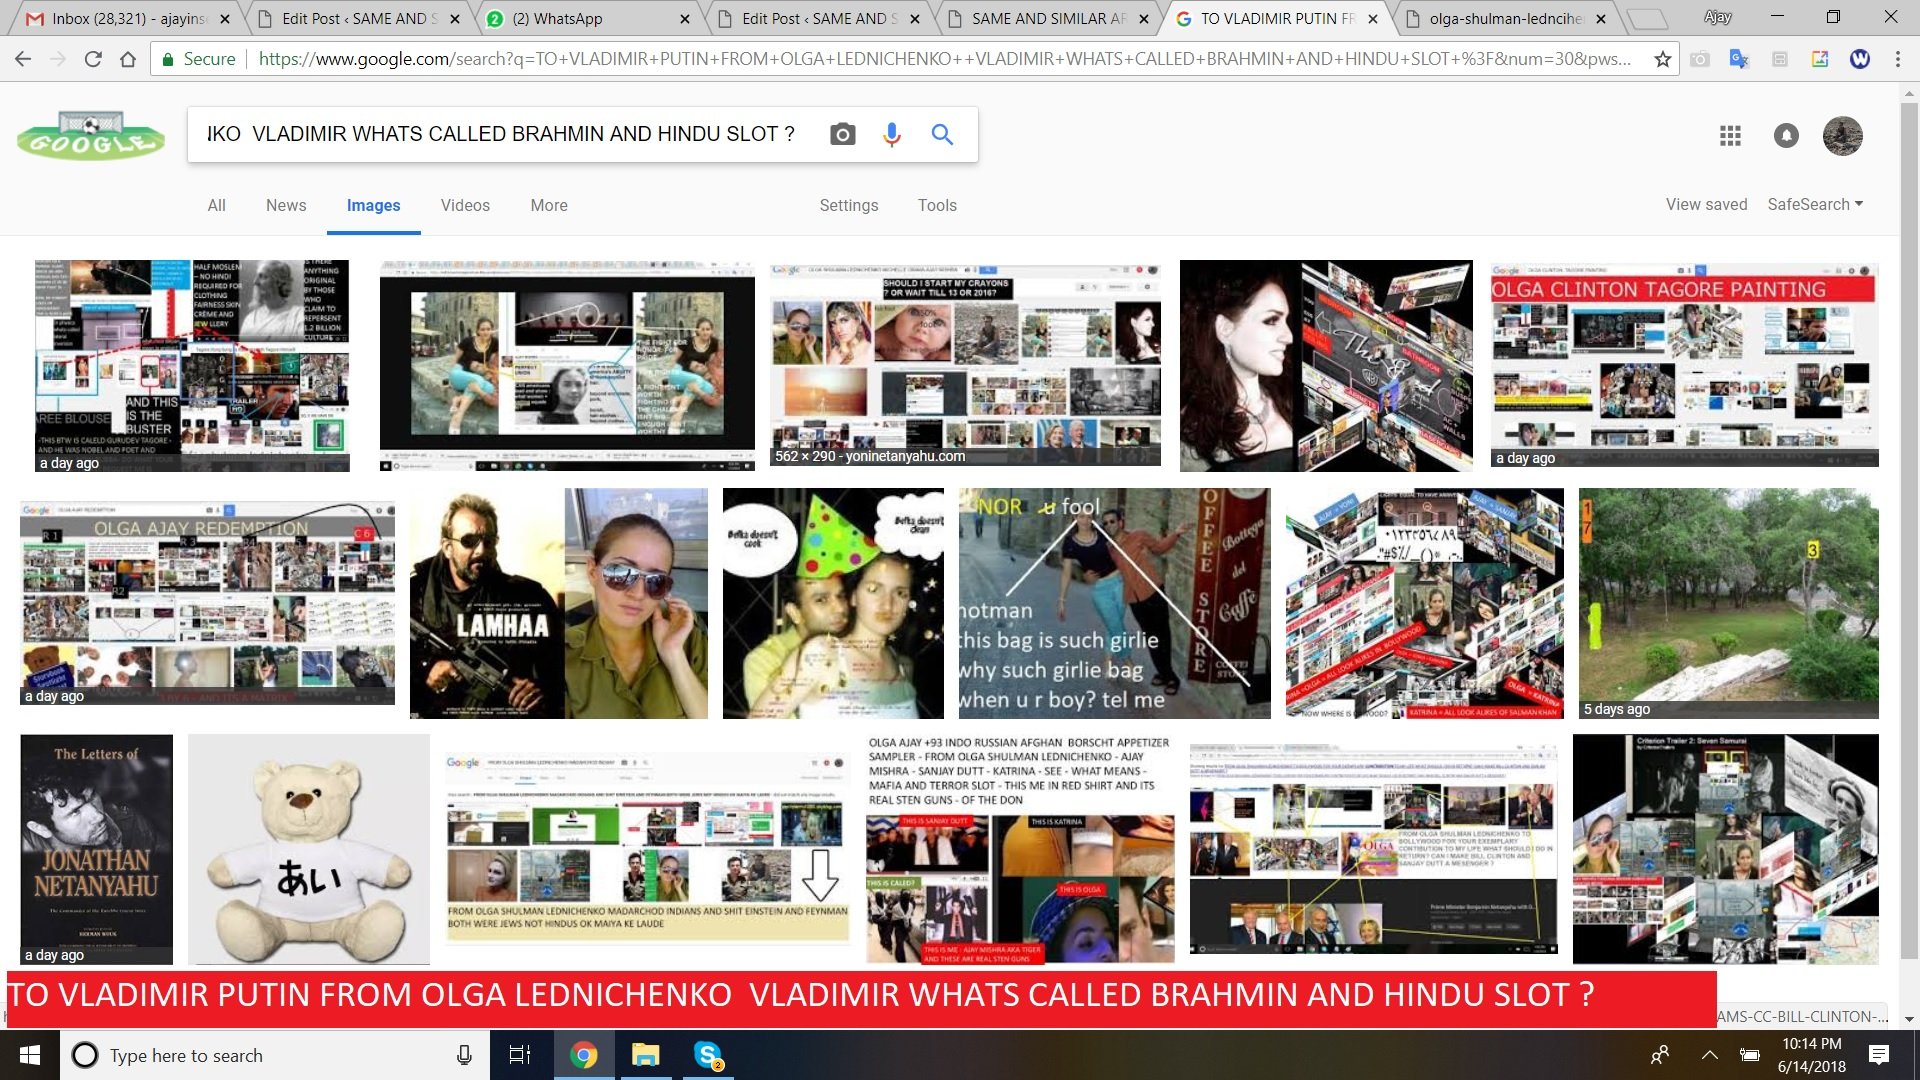 TO VLADIMIR PUTIN FROM OLGA LEDNICHENKO VLADIMIR WHATS CALLED BRAHMIN AND HINDU SLOT